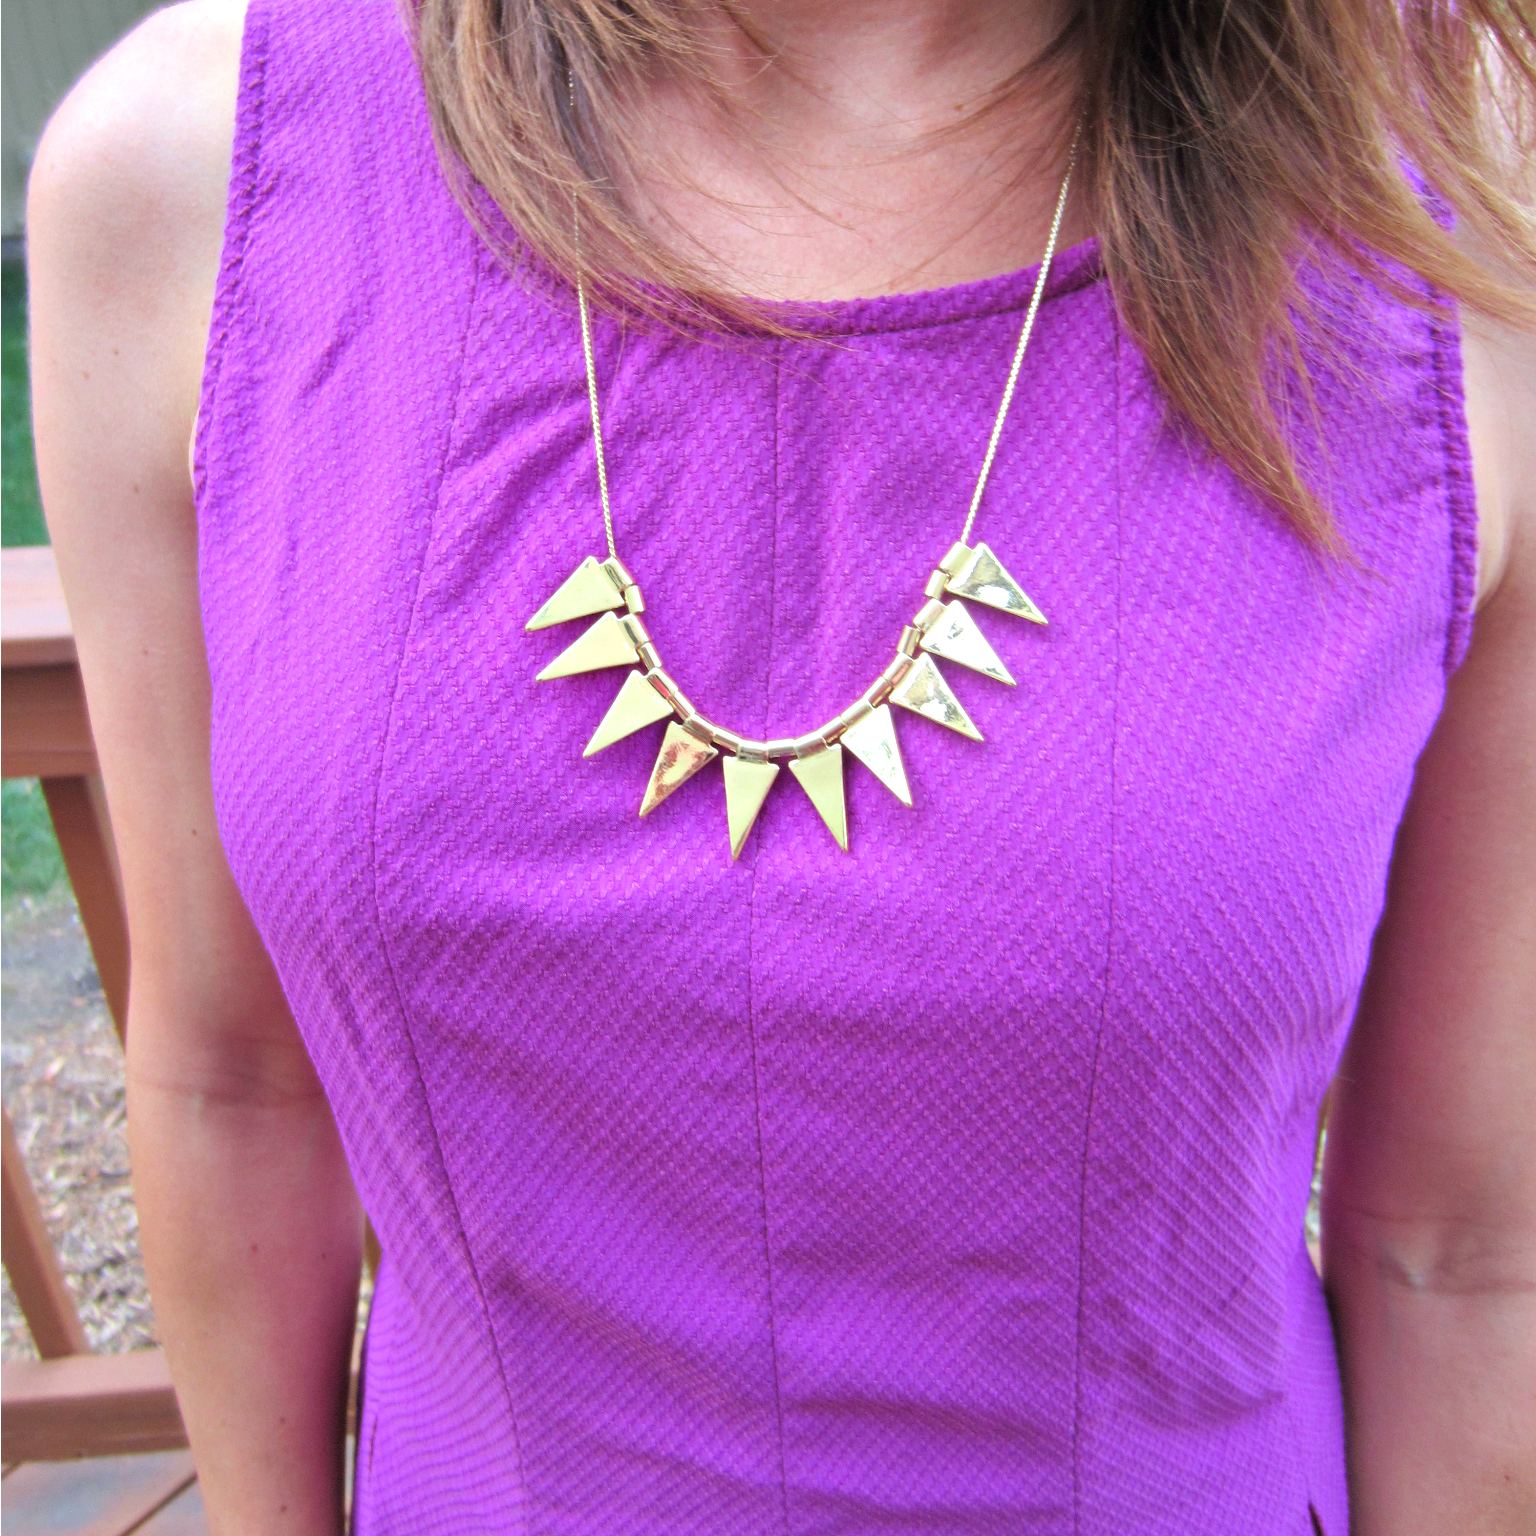 stitch fix romolo rania metal spike necklace